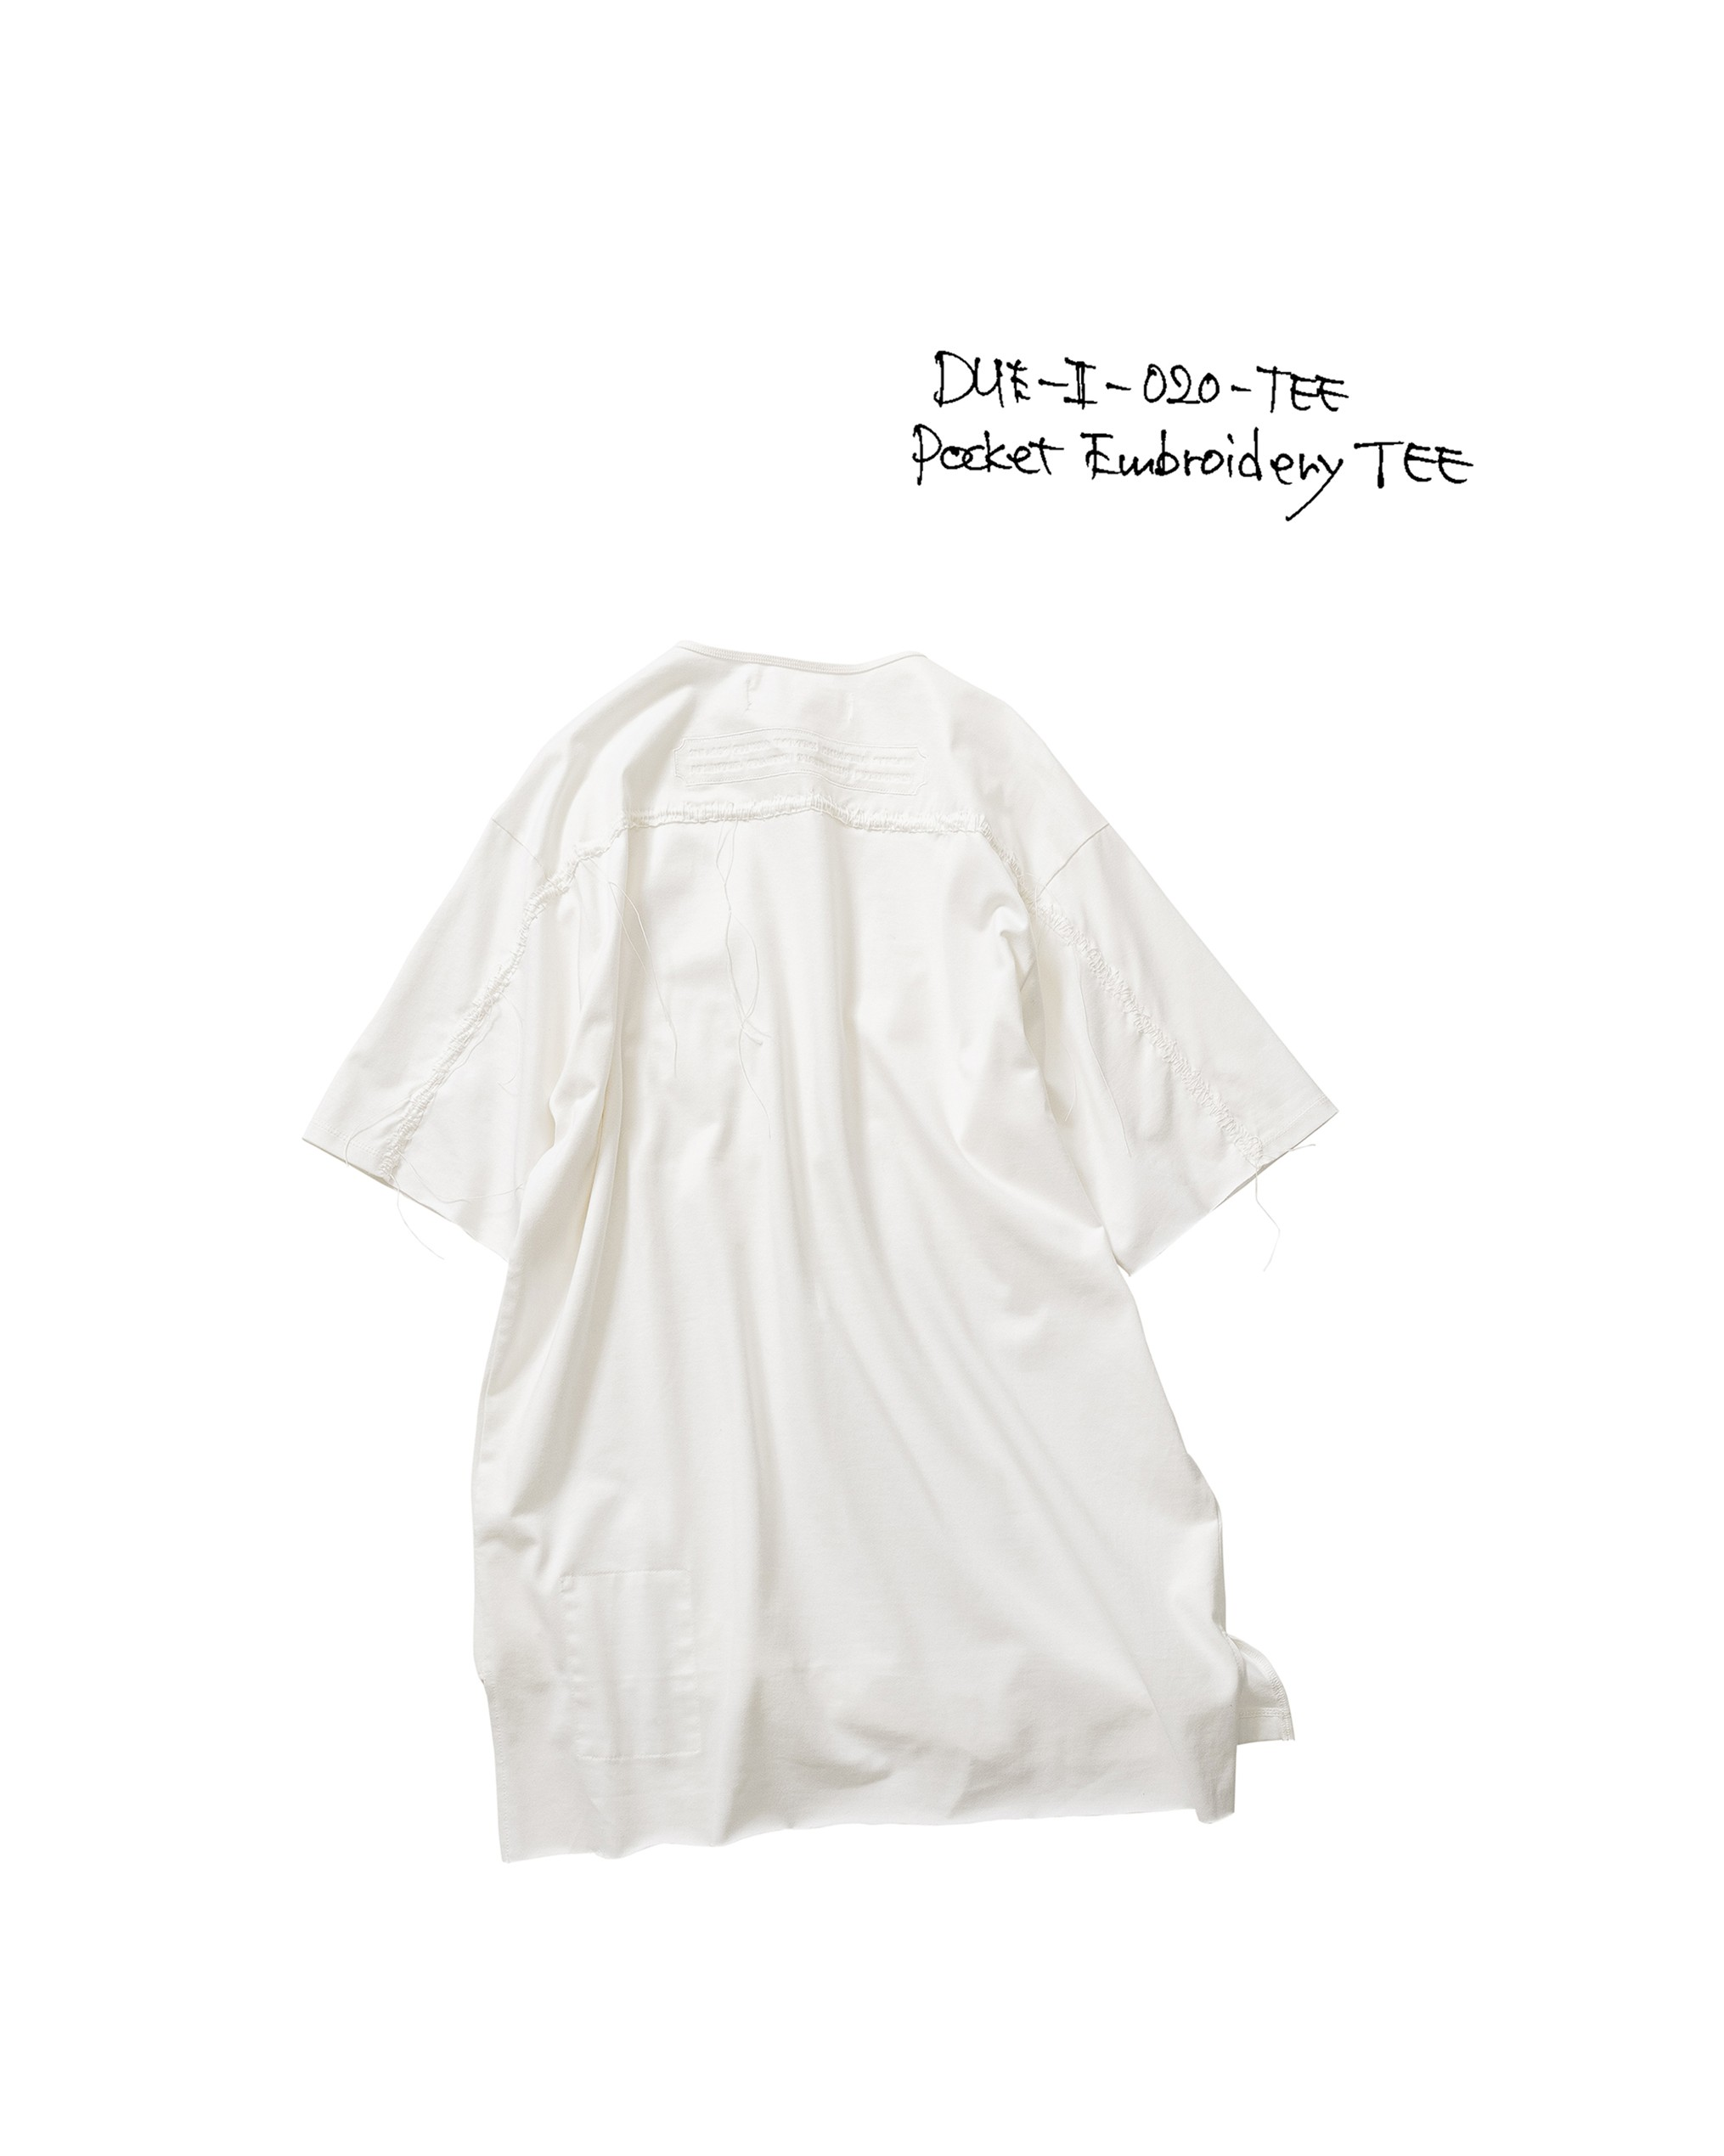 21SS DUE-Ⅱ-020-TEE-WHT POCKT-EMBROIDERY TEE